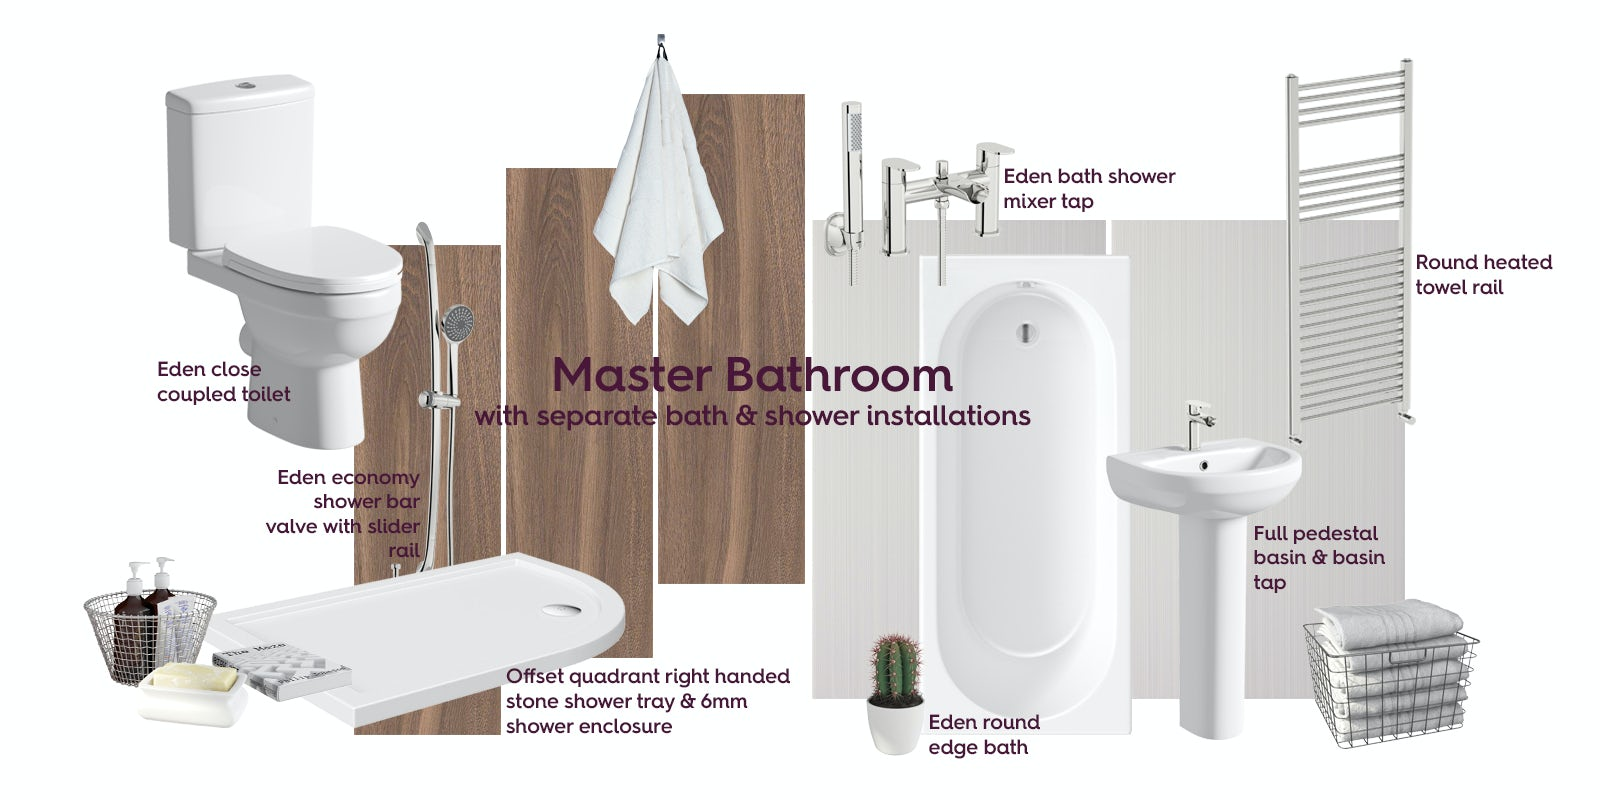 Master bathroom with separate bath & shower mood board